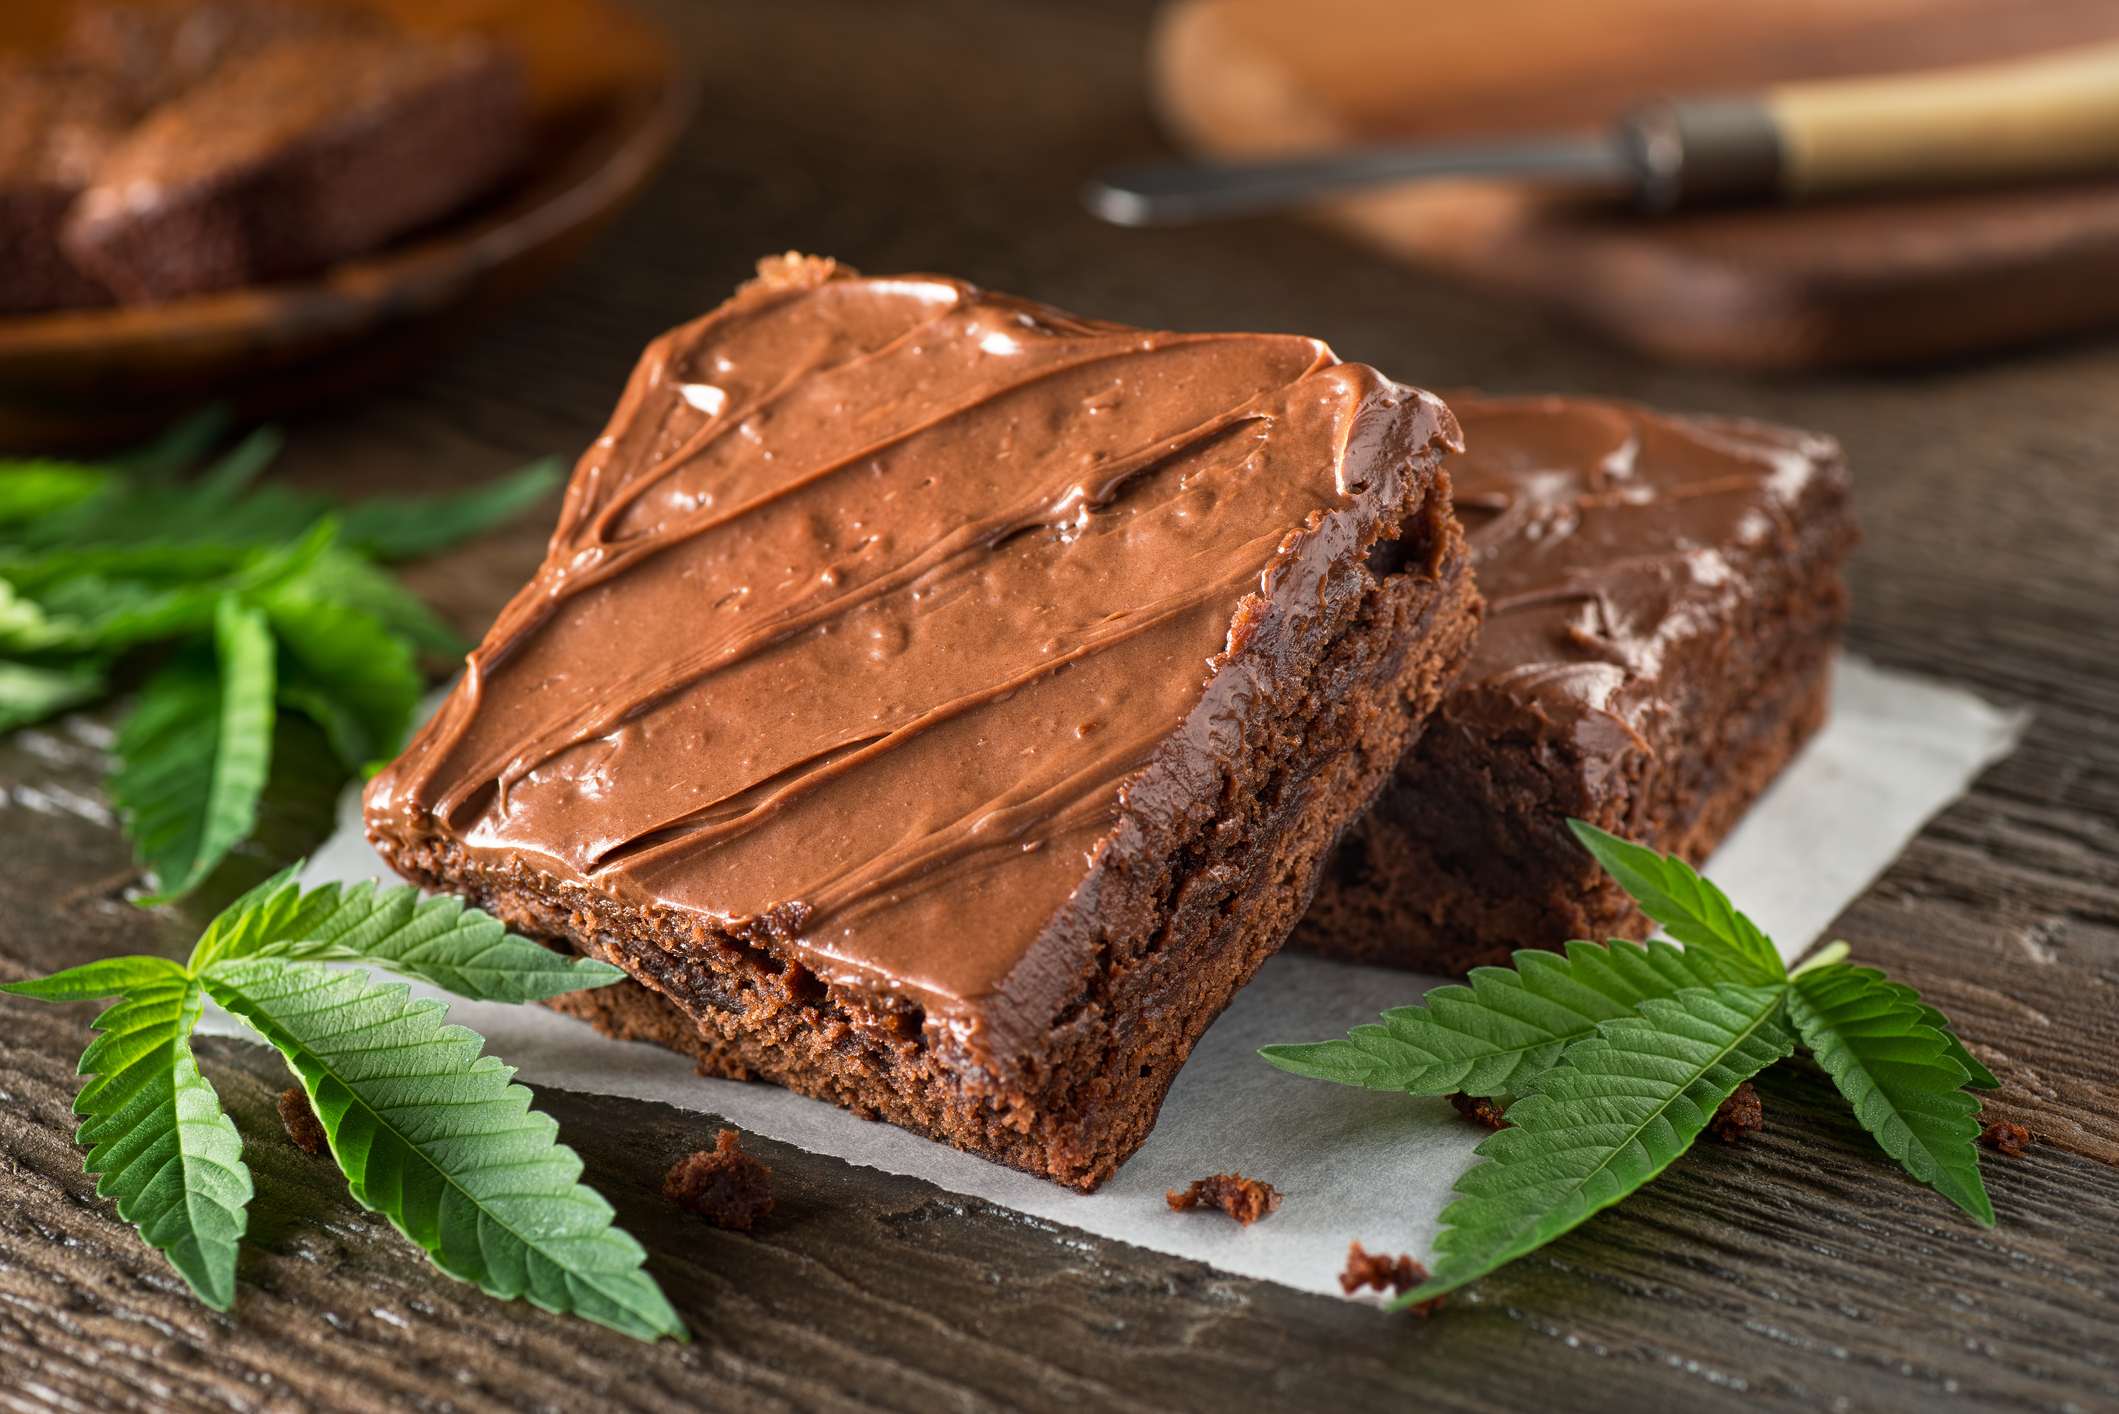 How Long Does It Take For Edibles to Kick In?